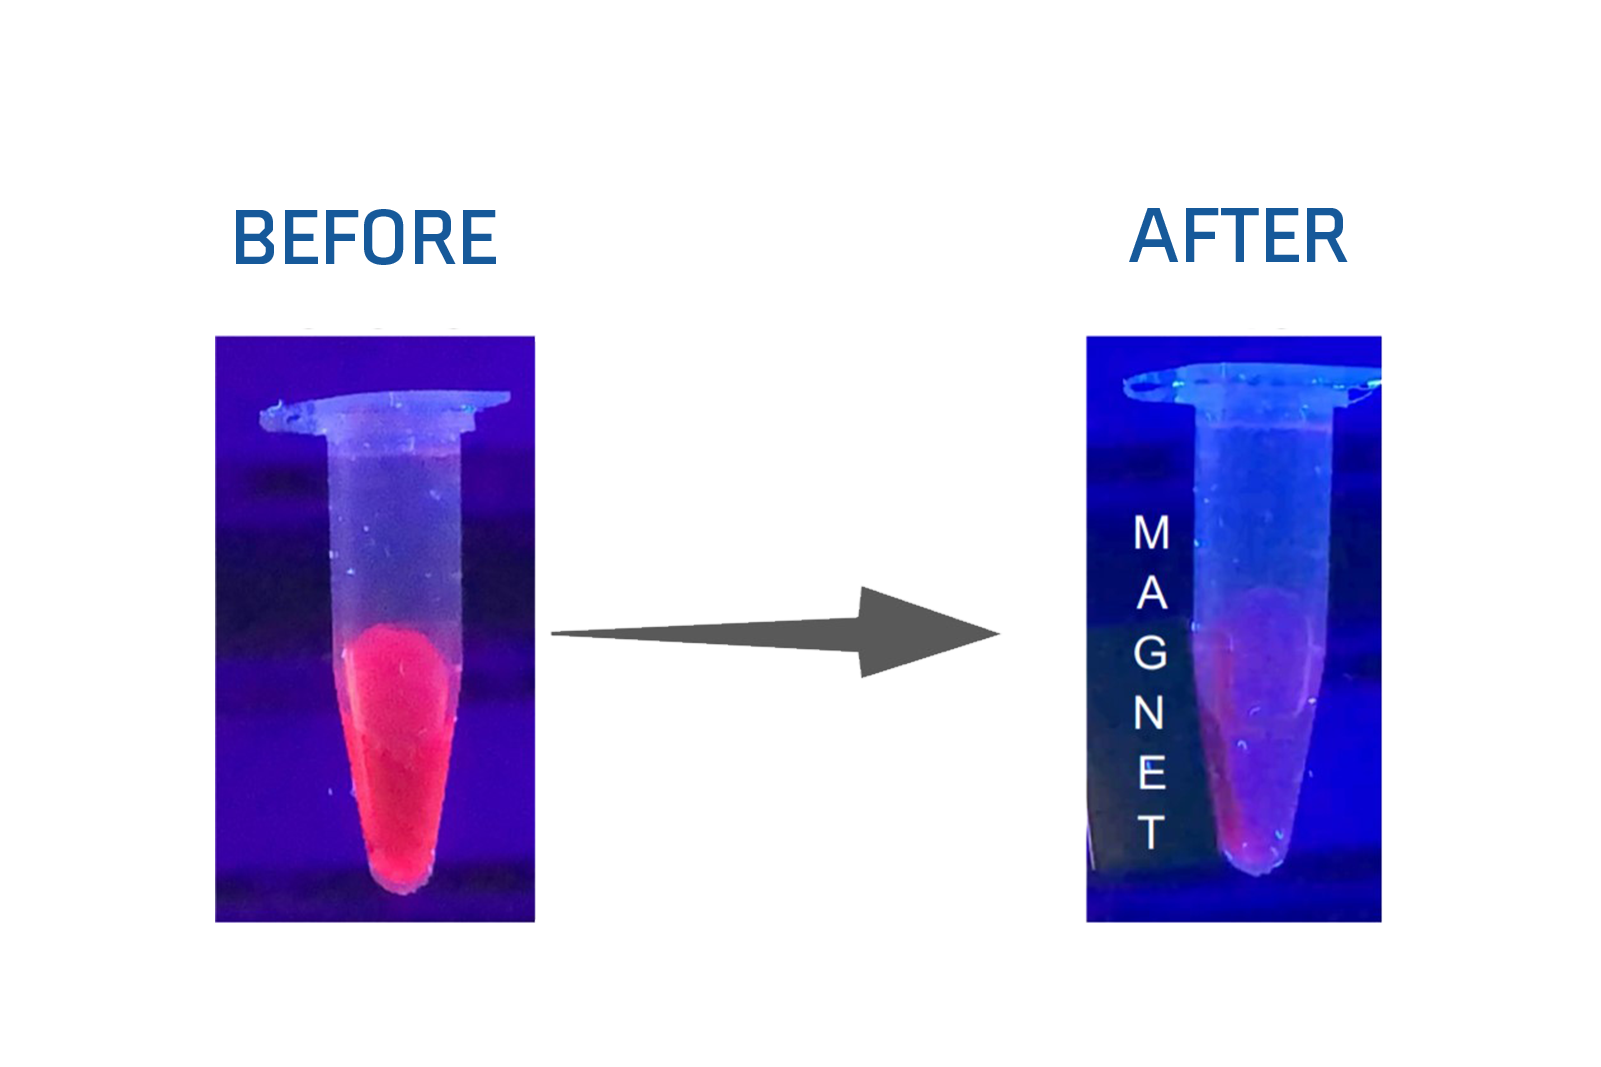 Bright Red CdSe Based Quantum Dots (Magnetic)